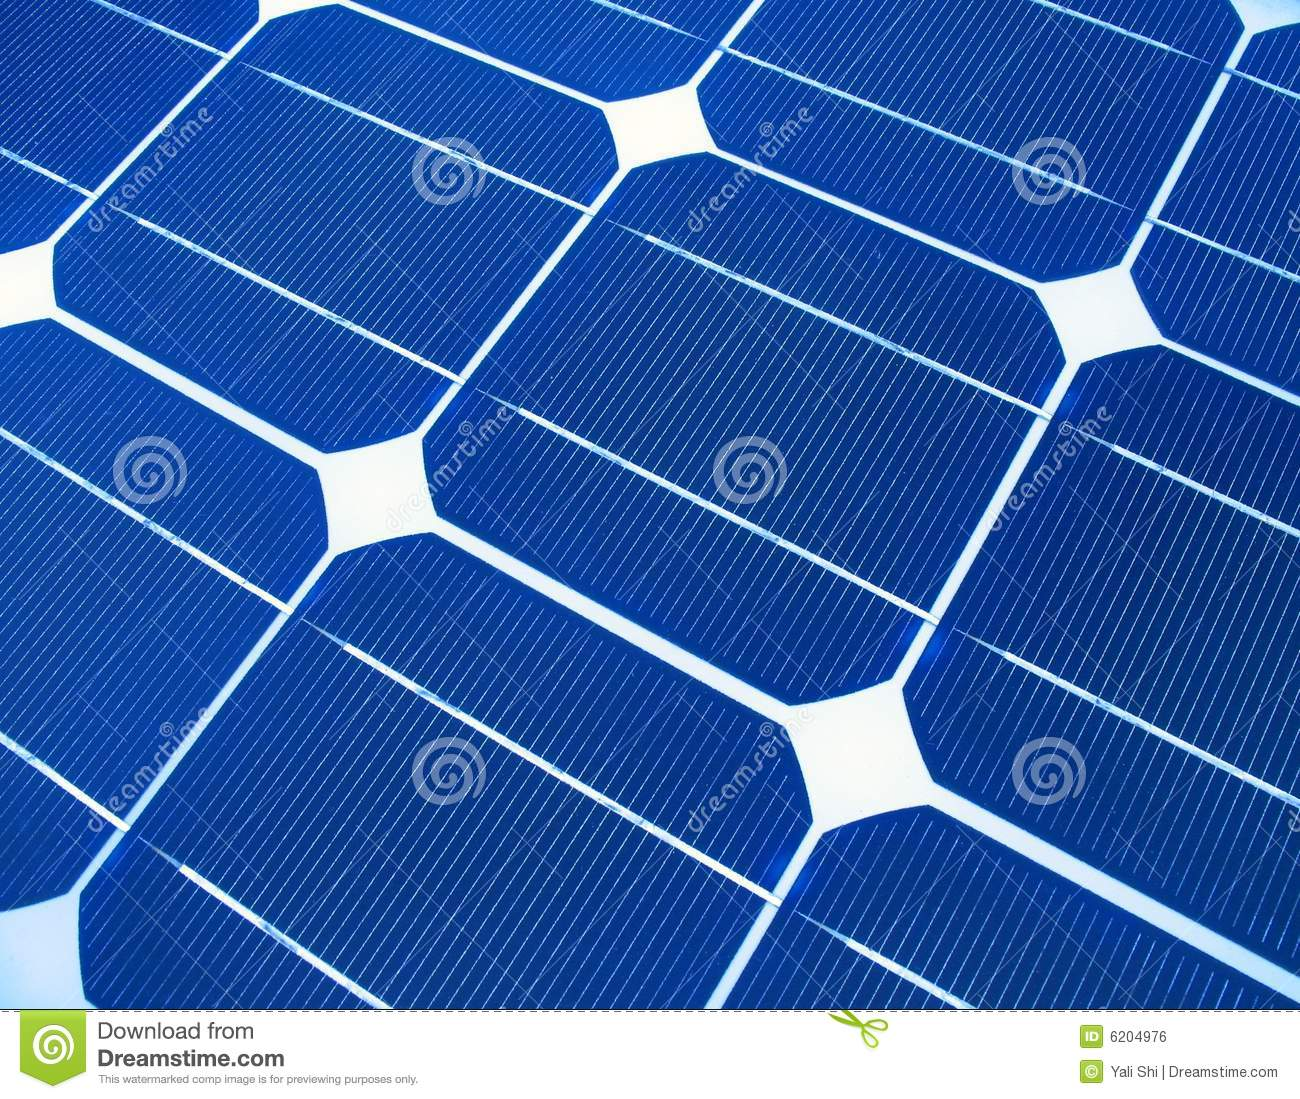 Garre Solar Power Business Plan Free